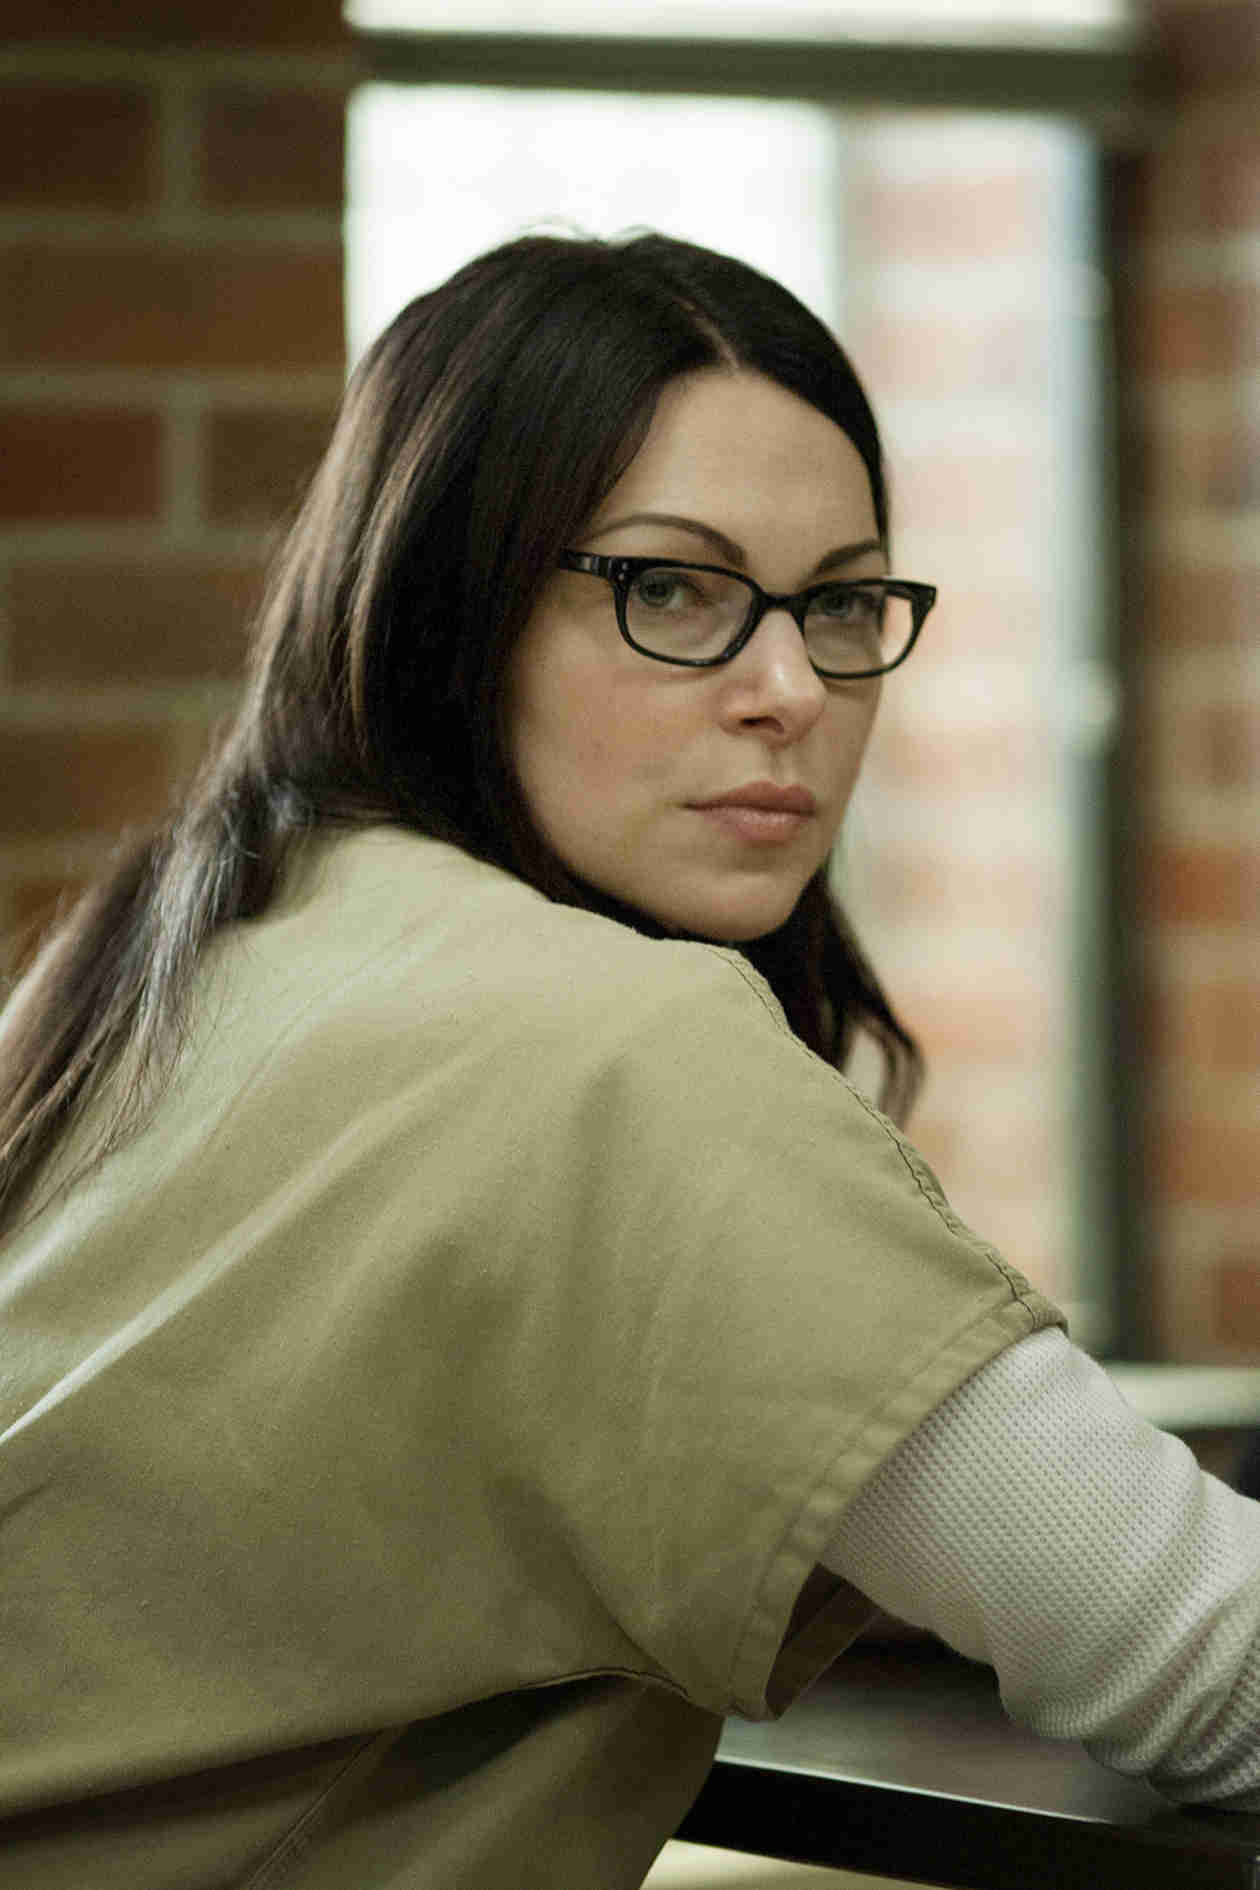 Orange Is the New Black Season 3 Spoiler: How Will Alex React to Piper's Betrayal?